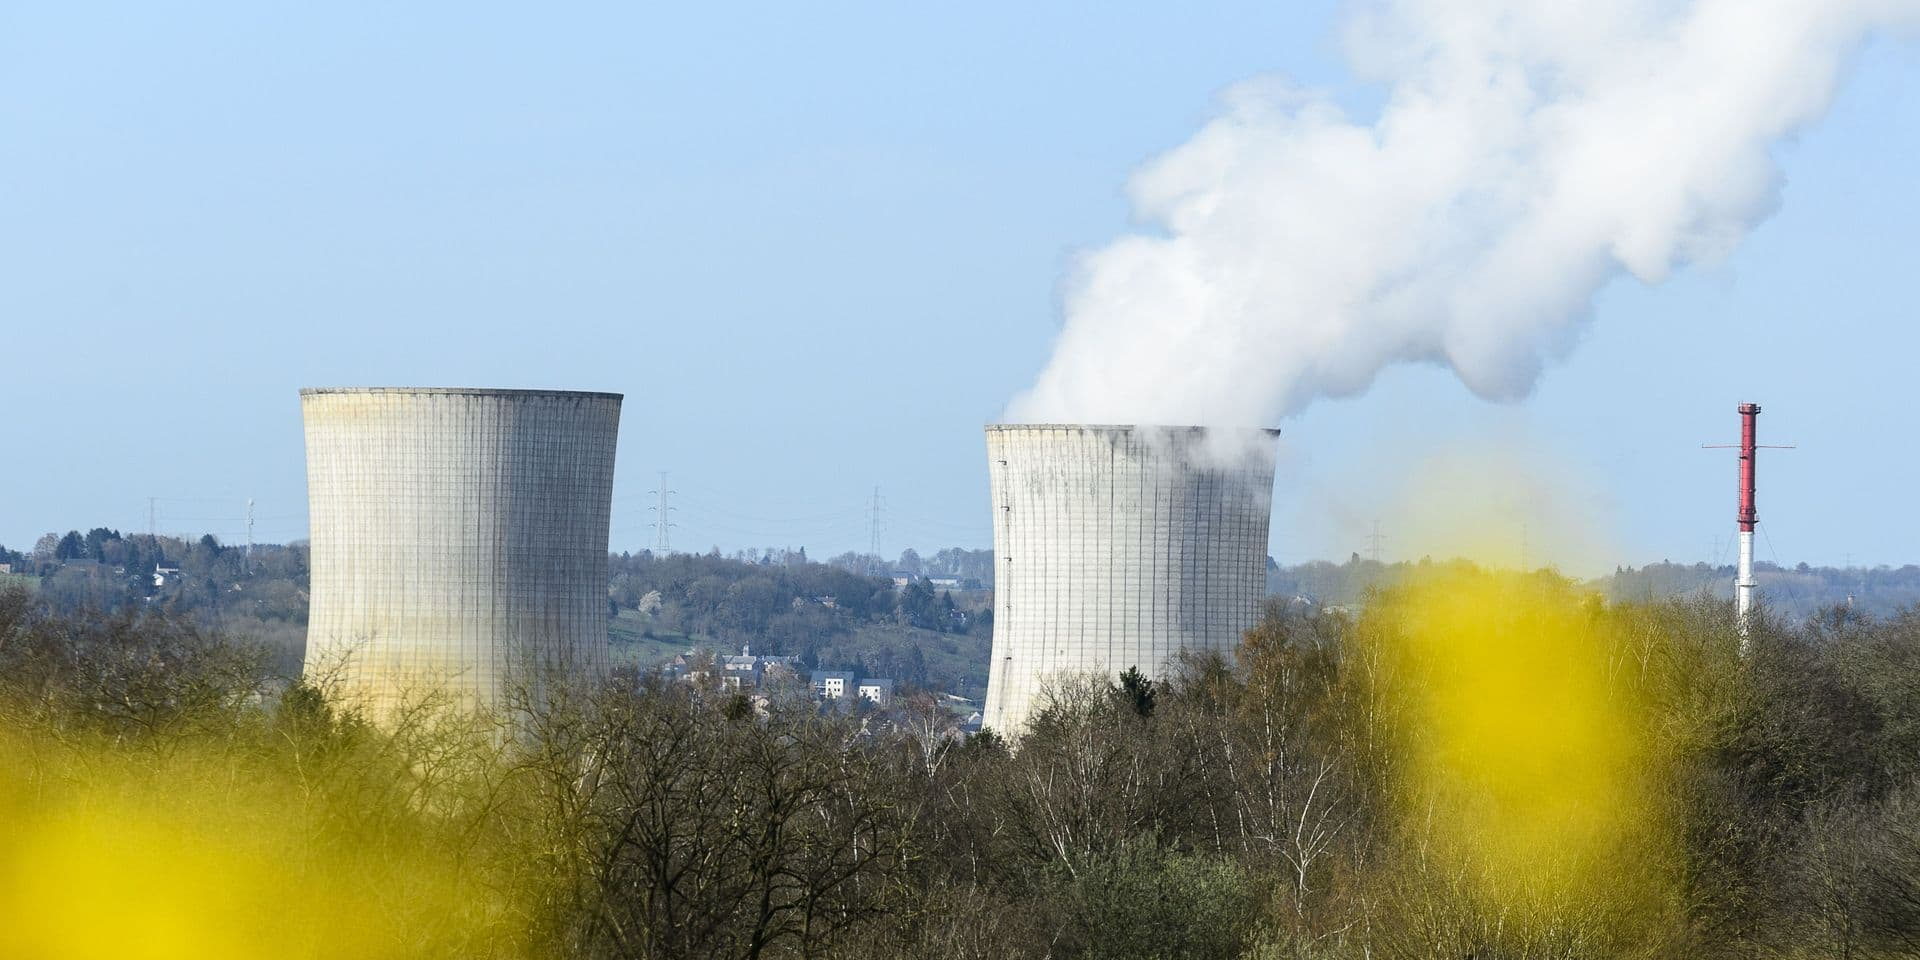 NUCLEAR PLANT OF TIHANGE